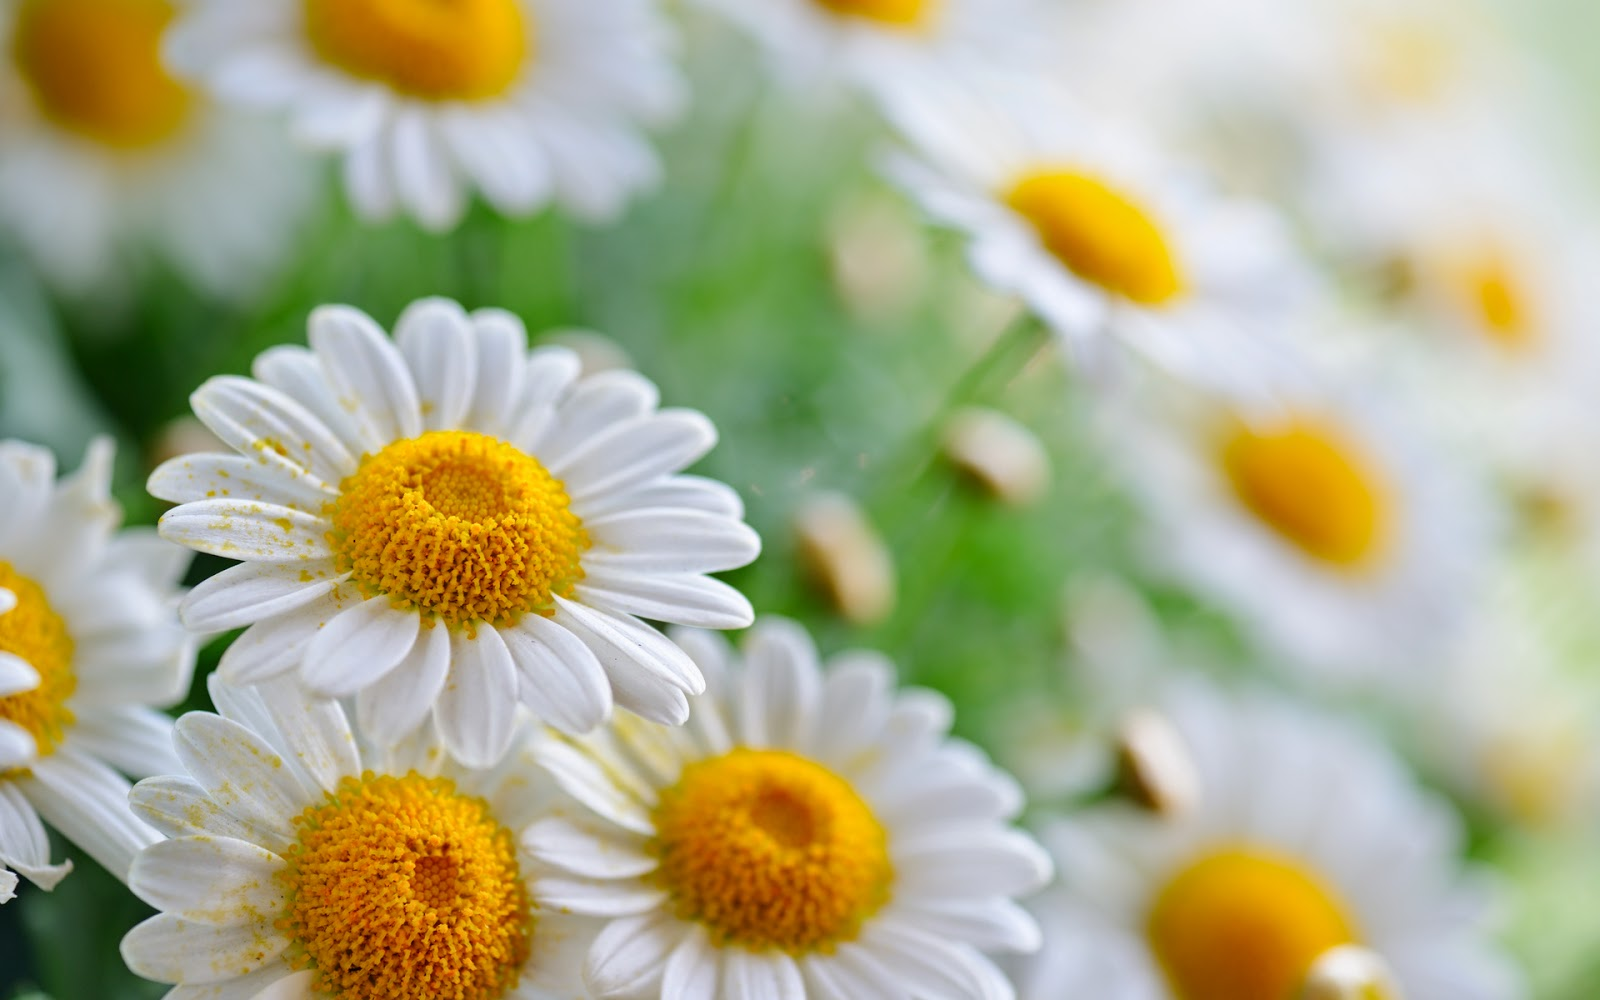 group-of-white-daisy-flowers-pictures.jpg